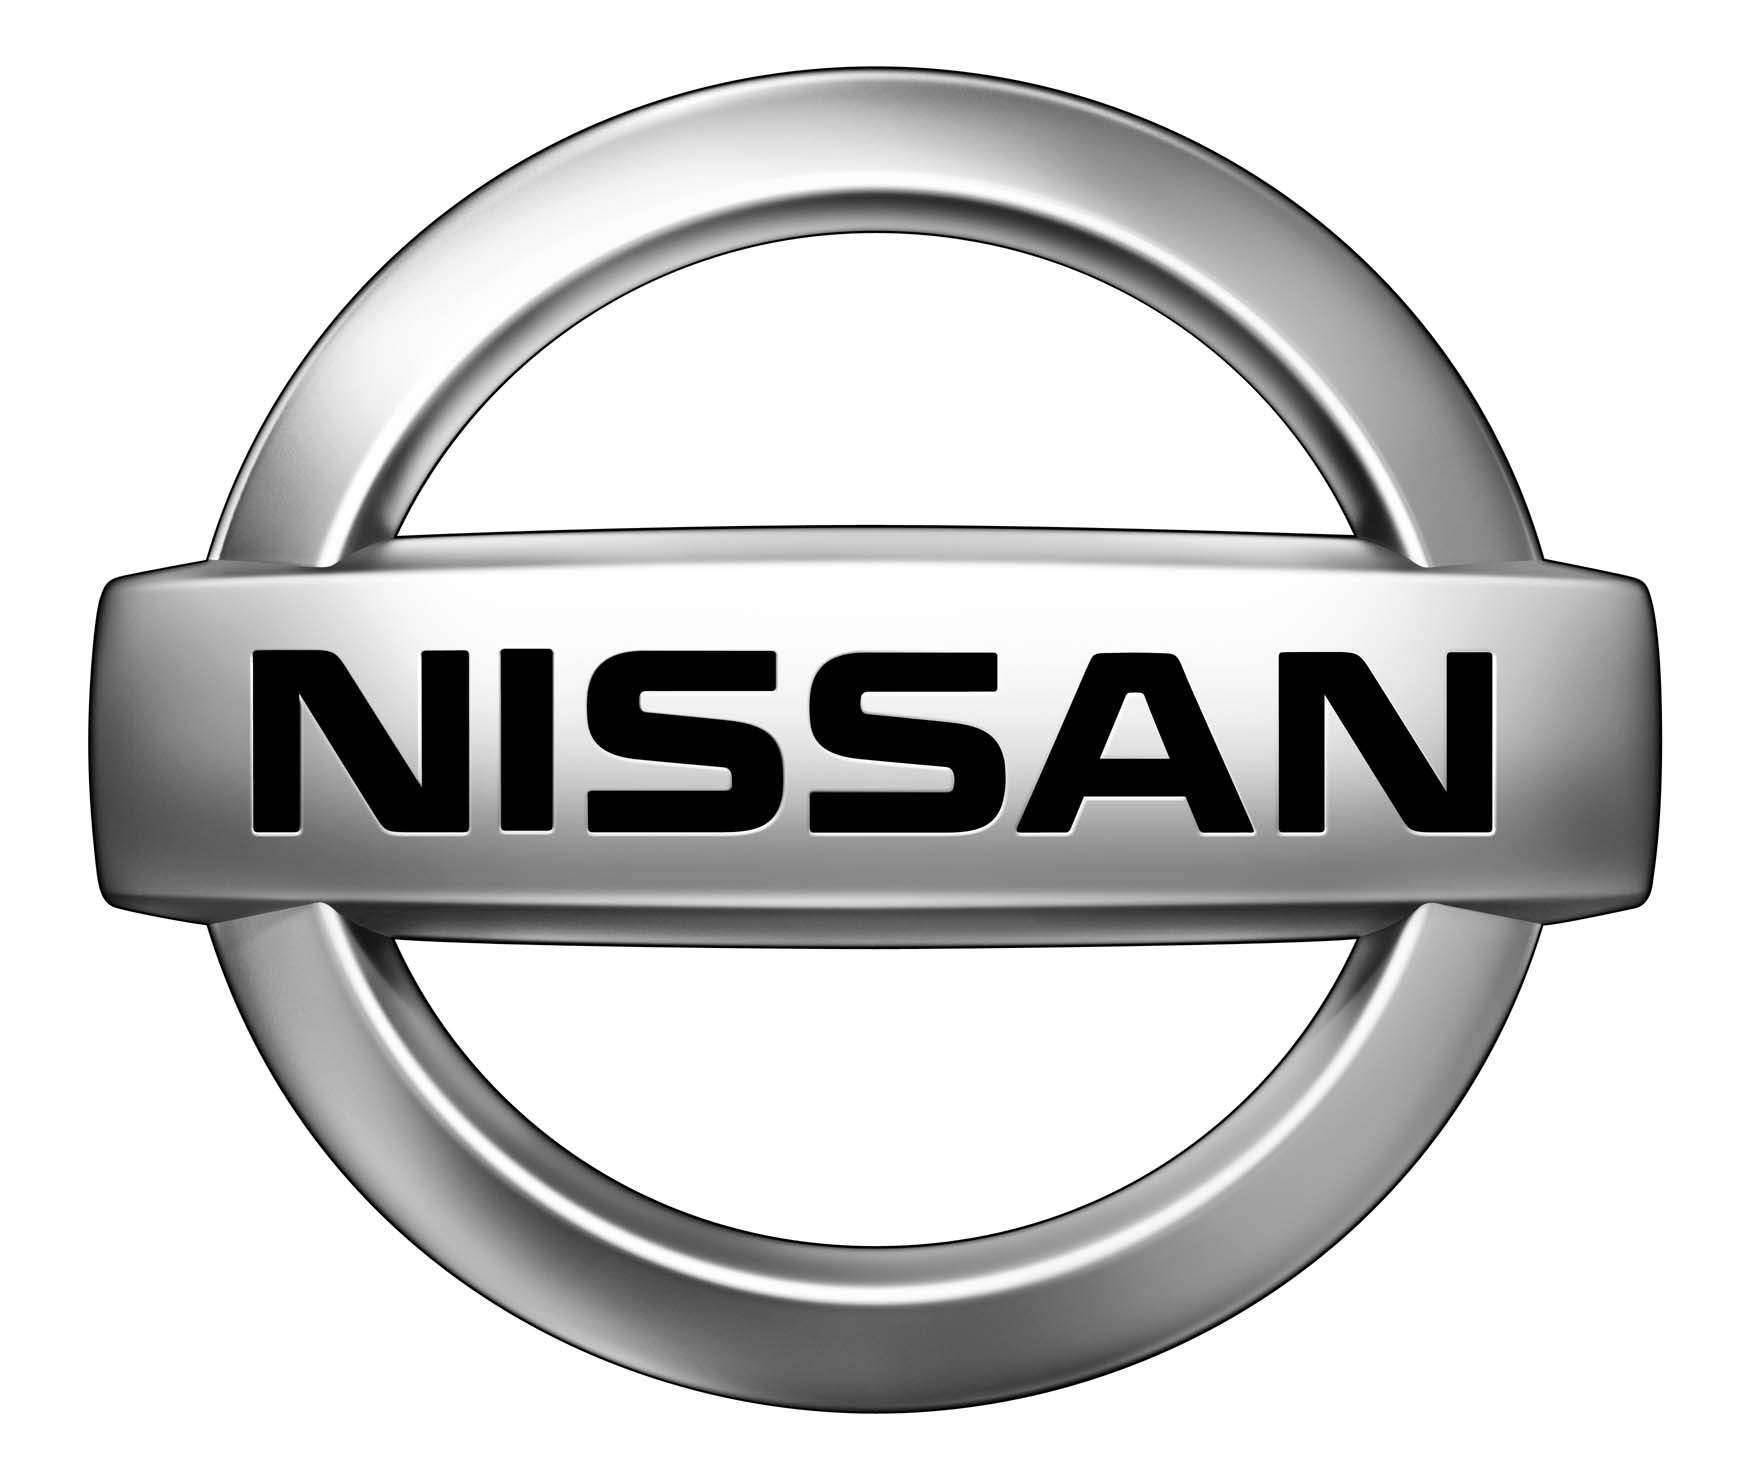 We are a dealer-grade Nissan auto repair shop serving Irving, TX for